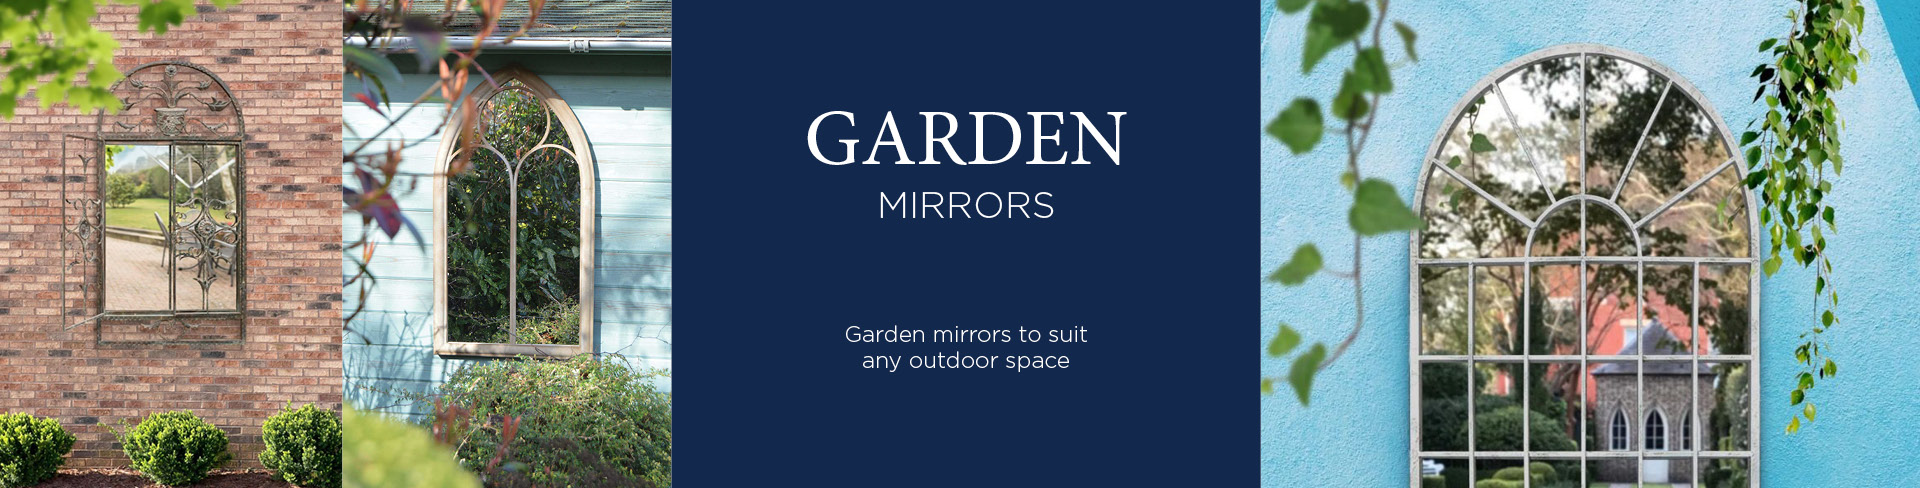 Shop Outside Amp Garden Mirrors Mirror Outlet